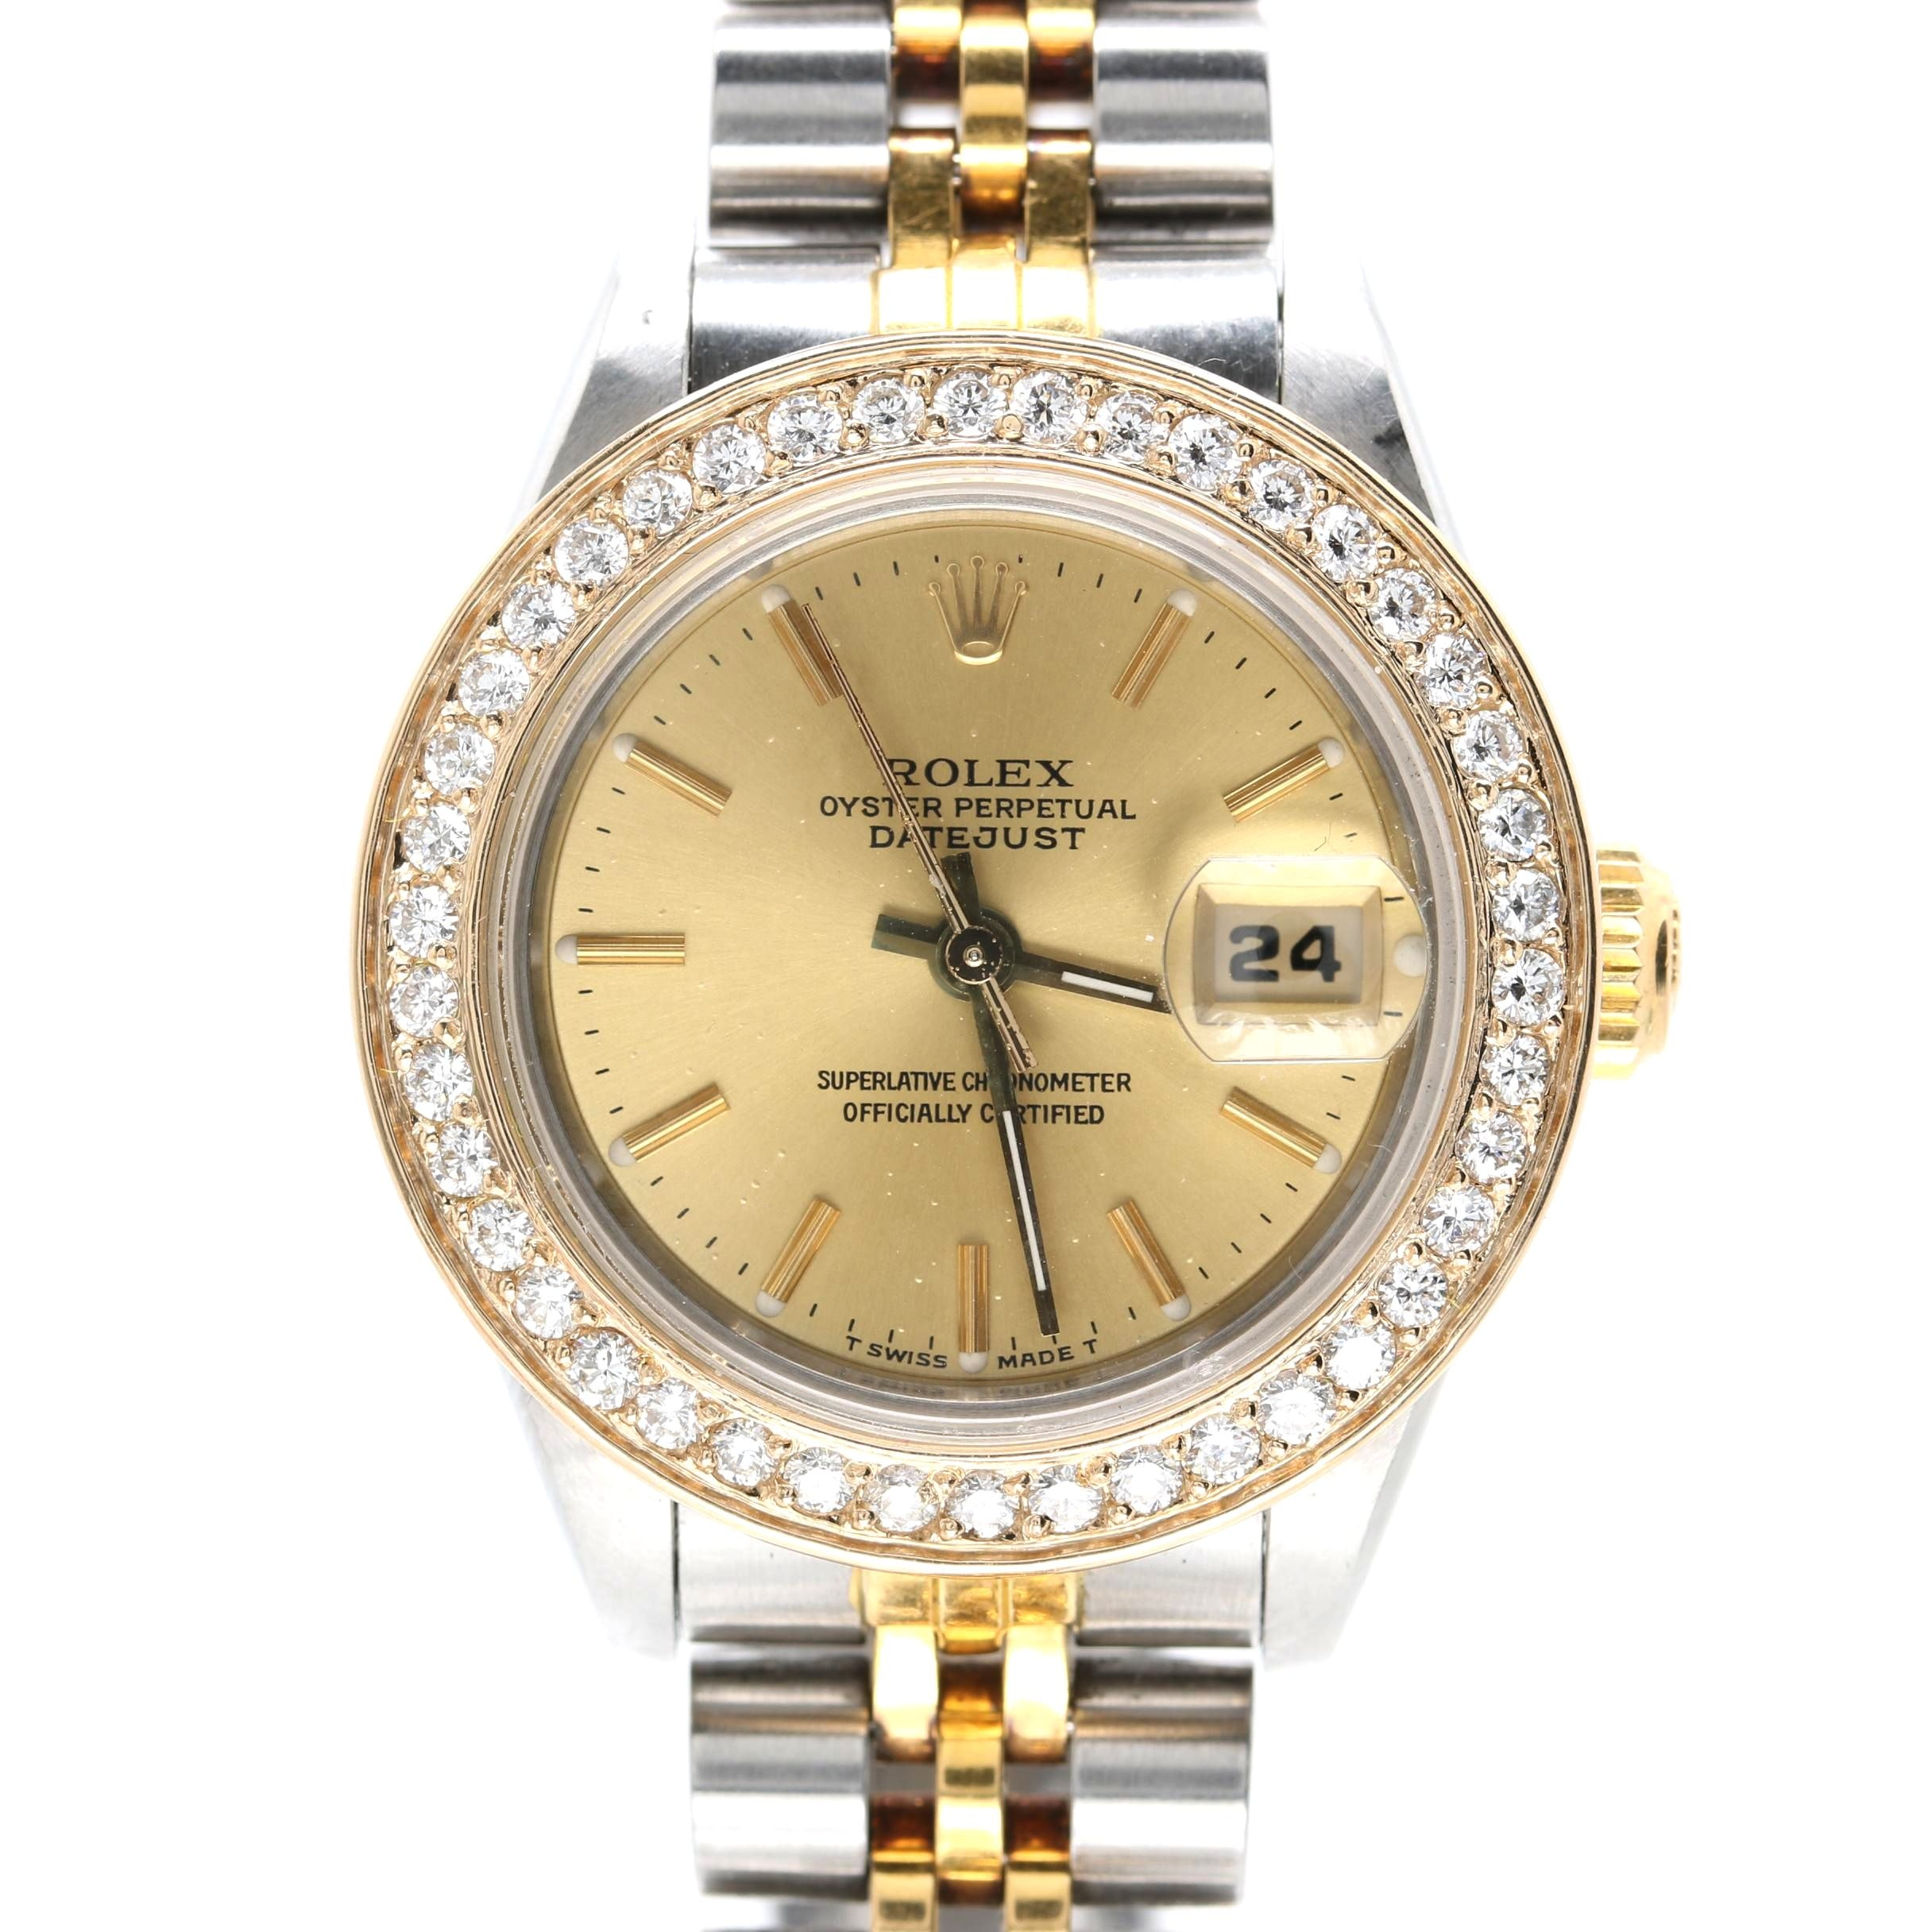 Rolex Datejust Stainless Steel and 18K Yellow Gold Diamond Wristwatch